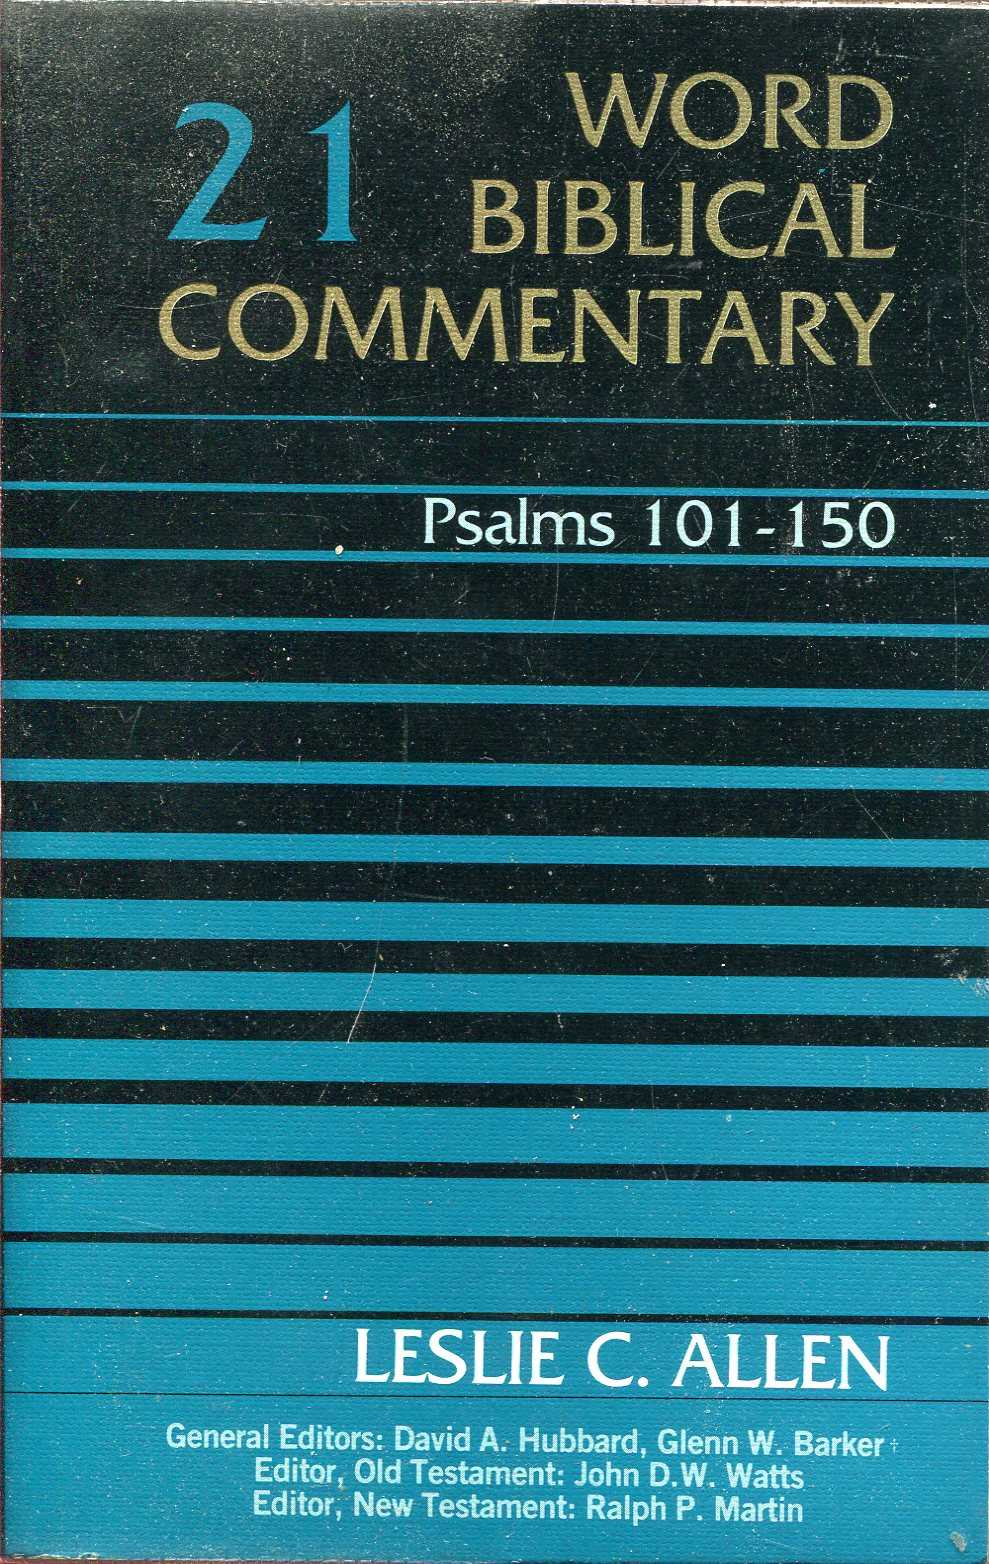 Image for Word Biblical Commentary volume21 : Psalms 101-150